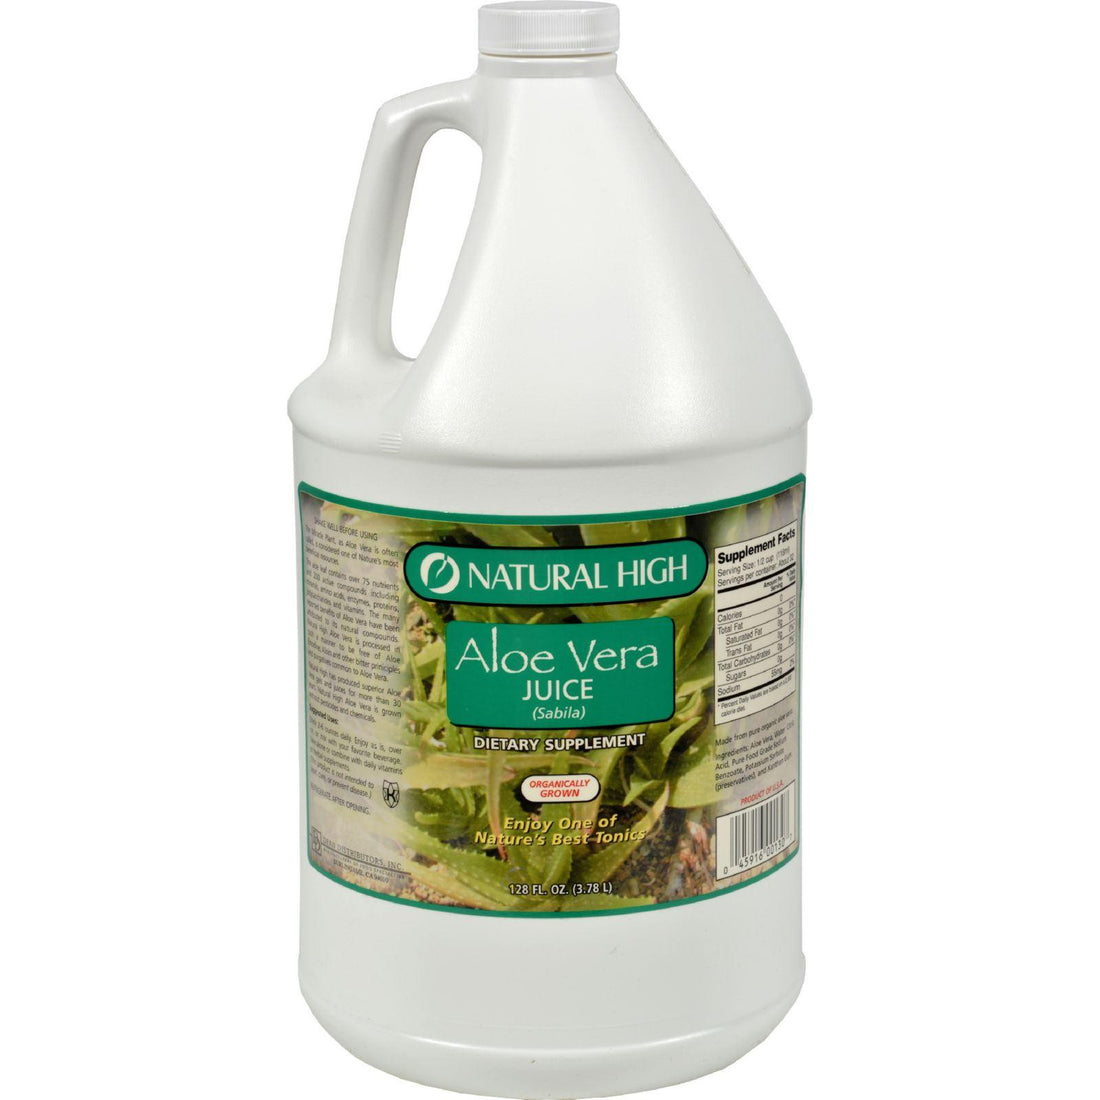 Mother Mantis: Natural High Aloe Vera Juice - Case Of 4 Gallons Natural High